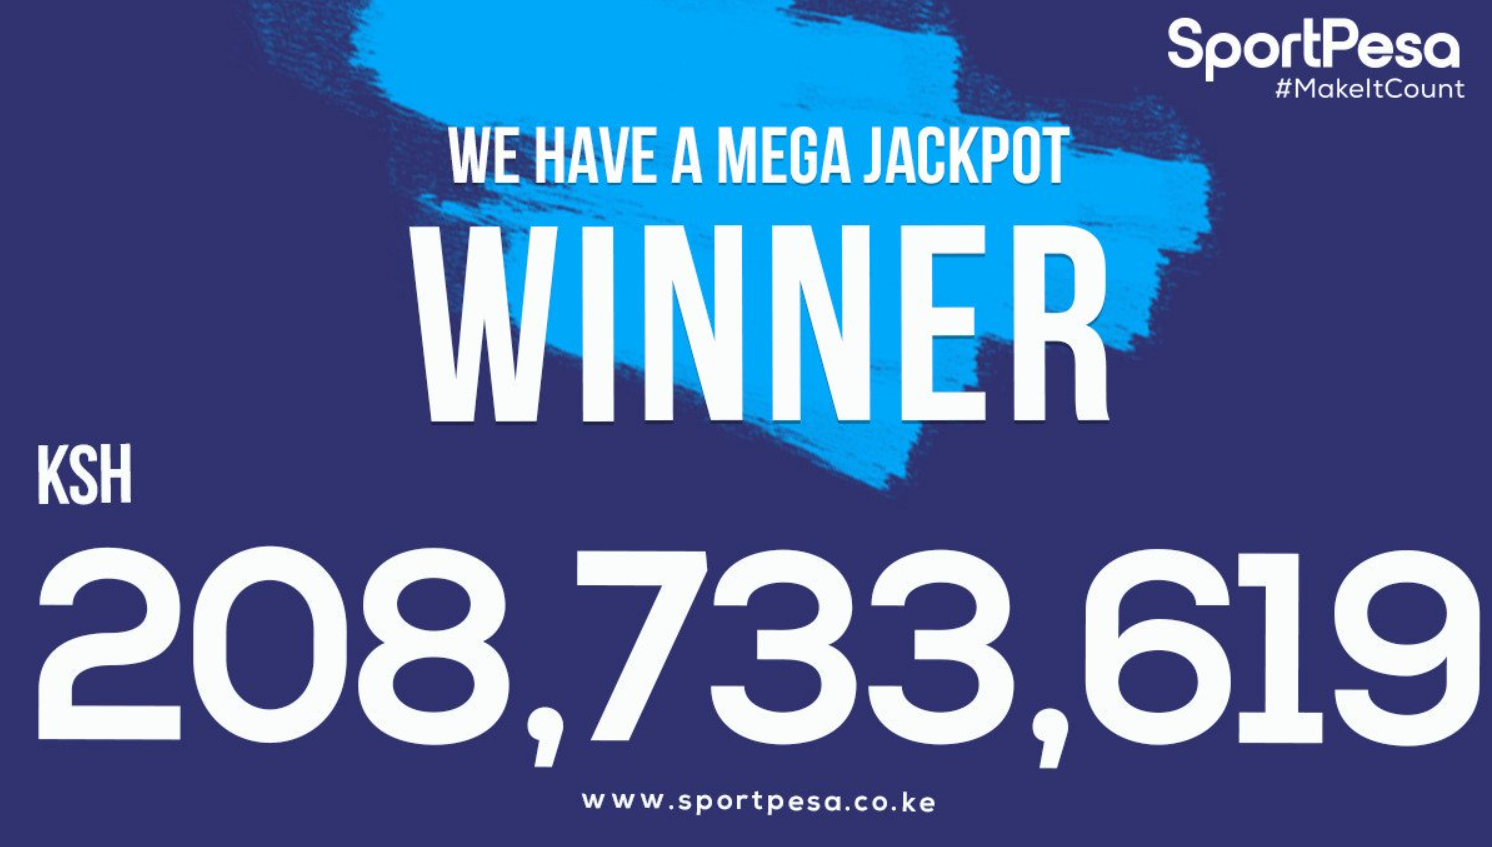 How to place bets for Sportpesa jackpot